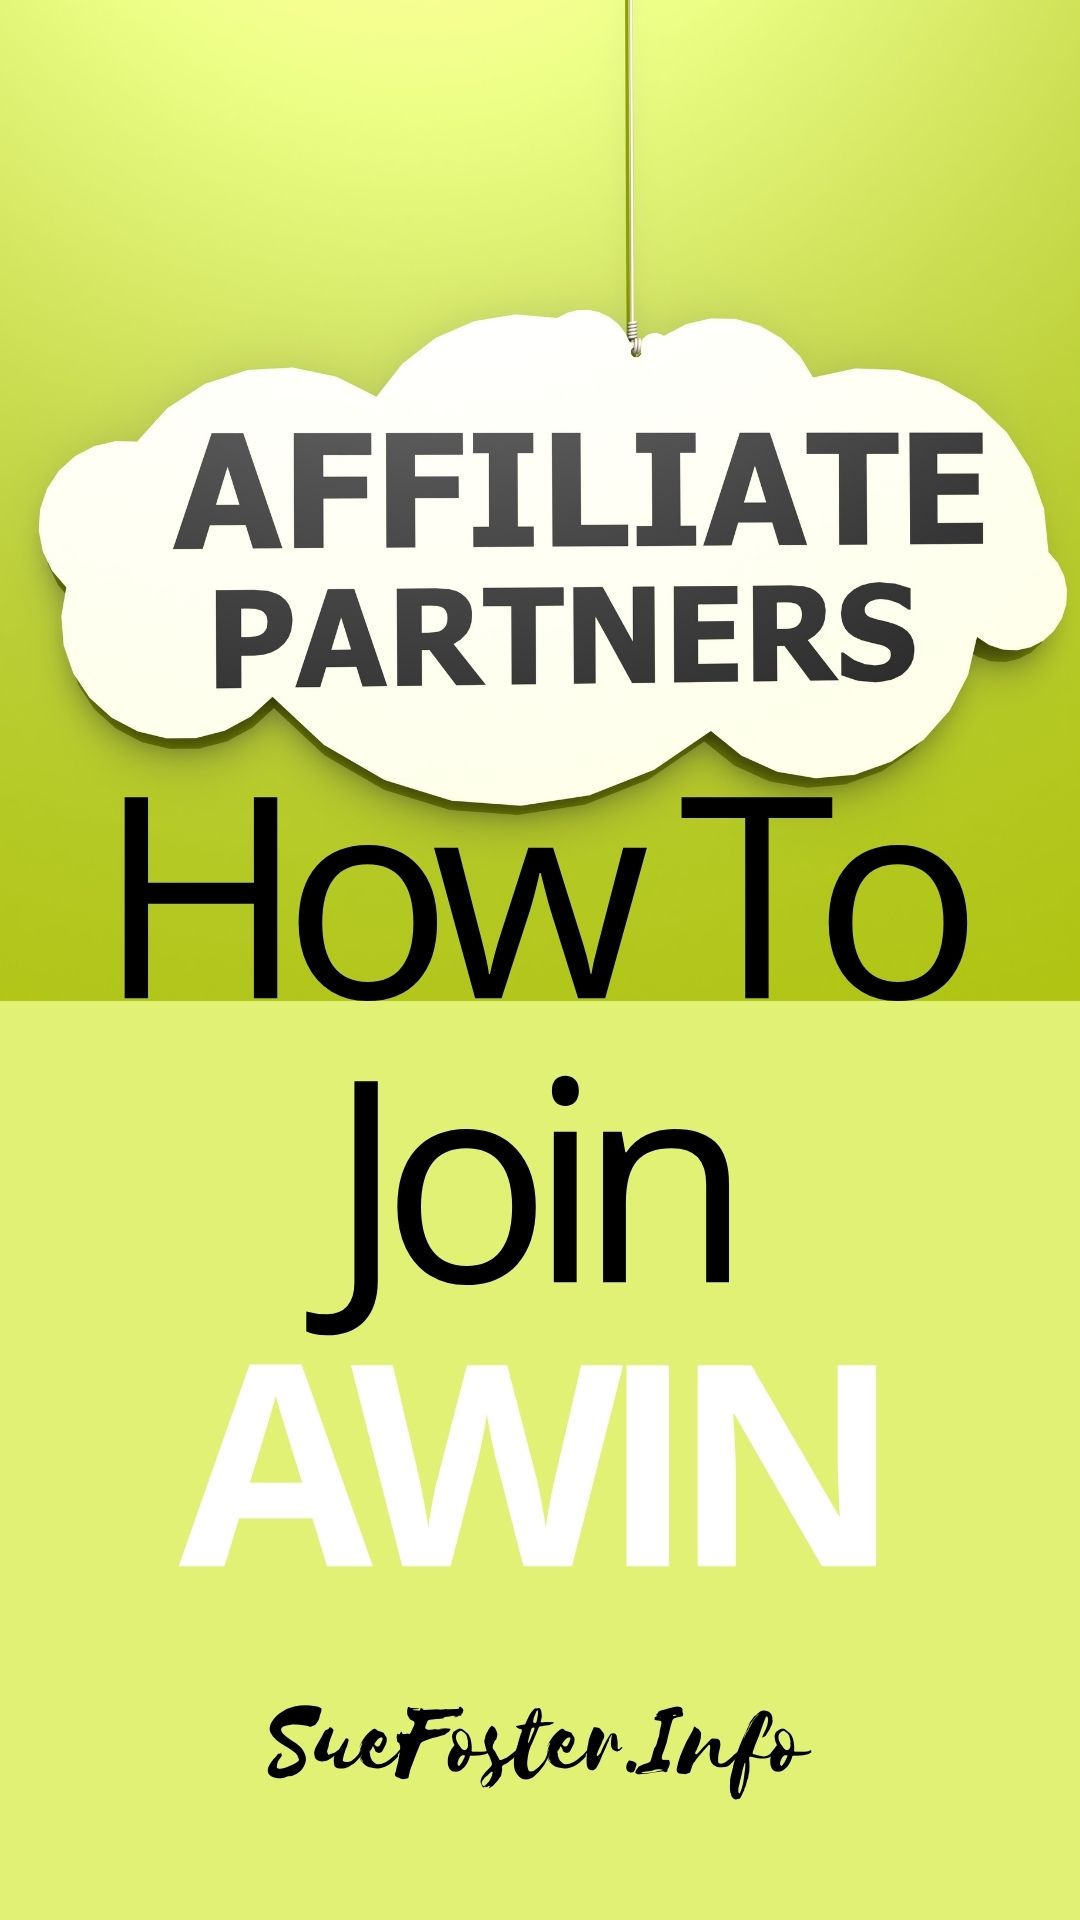 Affiliate marketing is a great way to earn a passive income from your blog, social media or your email list. Let's look at how to join Awin, the global affiliate network previously known as Affiliate Window.